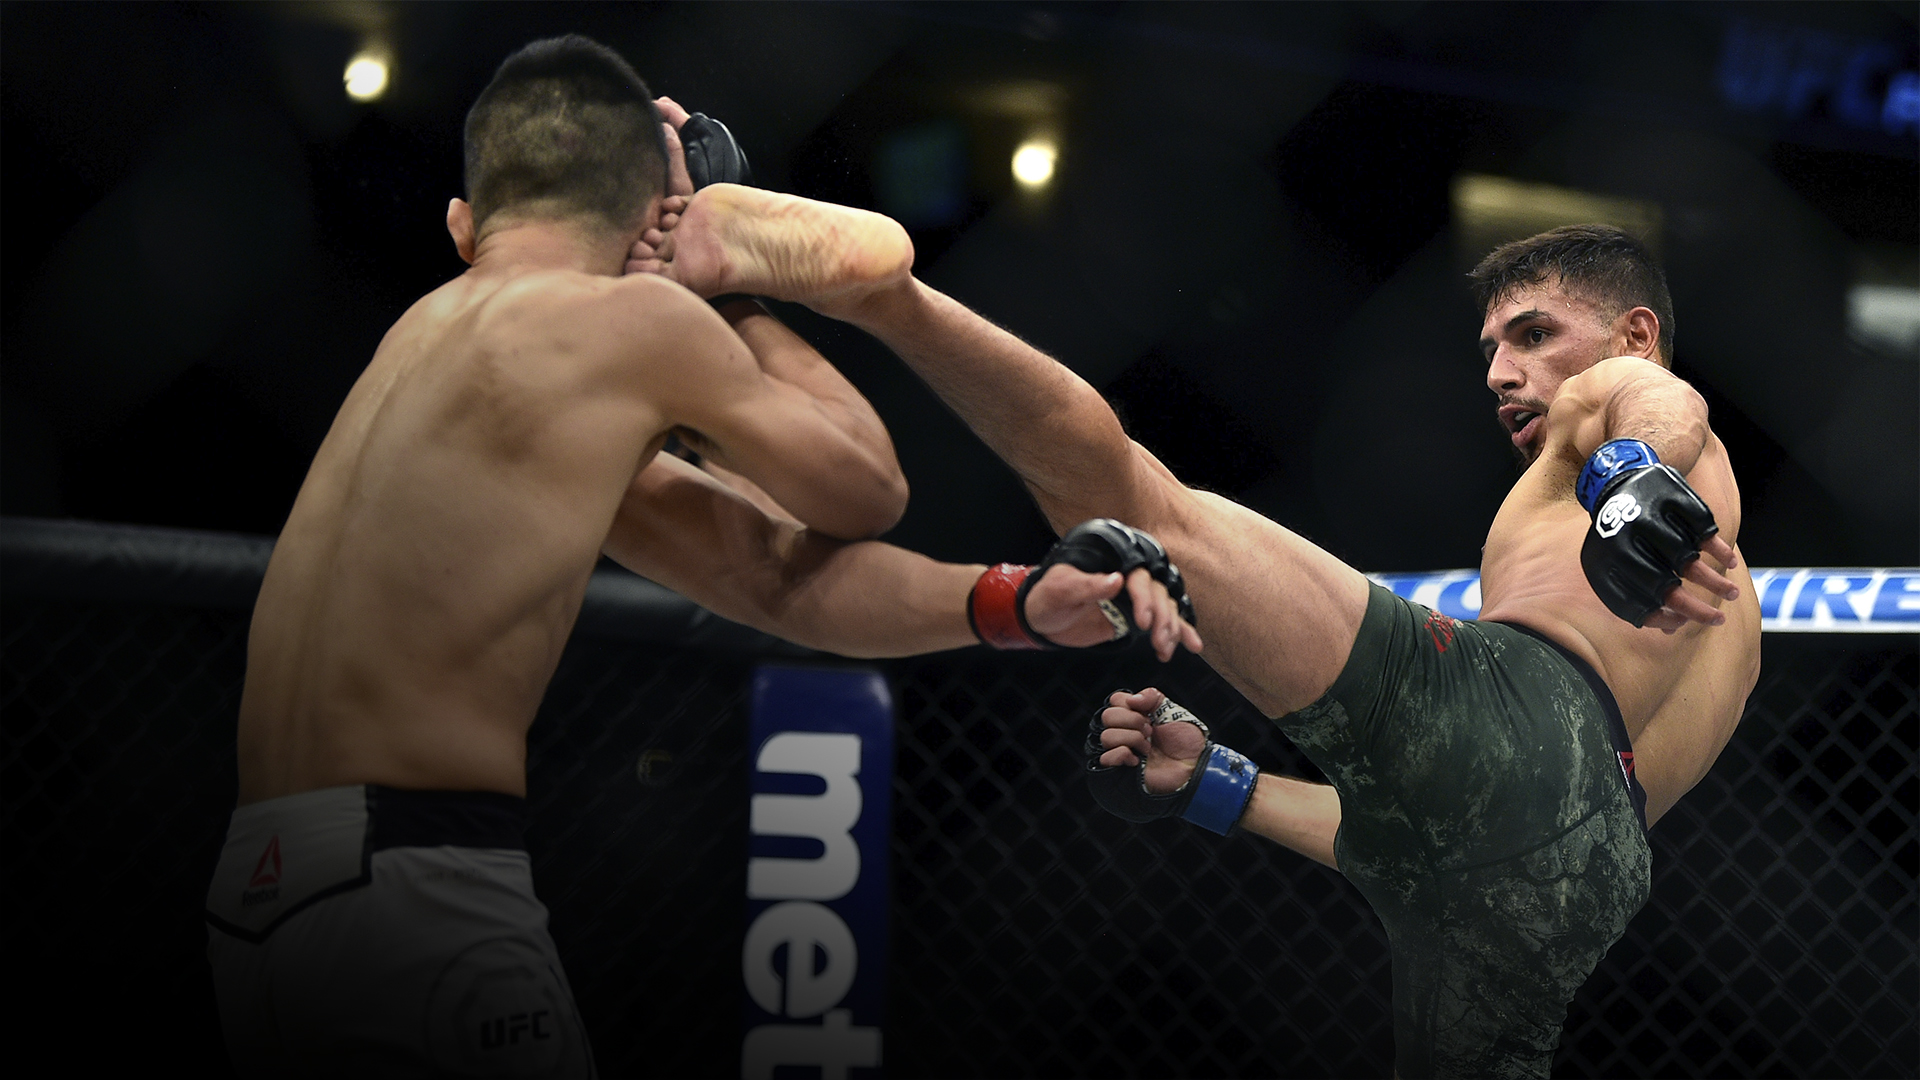 DENVER, CO - NOVEMBER 10: (R-L) Yair Rodriguez of Mexico kicks Chan Sung Jung of South Korea in their featherweight bout during the UFC Fight Night event inside Pepsi Center on November 10, 2018 in Denver, Colorado. (Photo by Chris Unger/Zuffa LLC/Zuffa LLC via Getty Images)